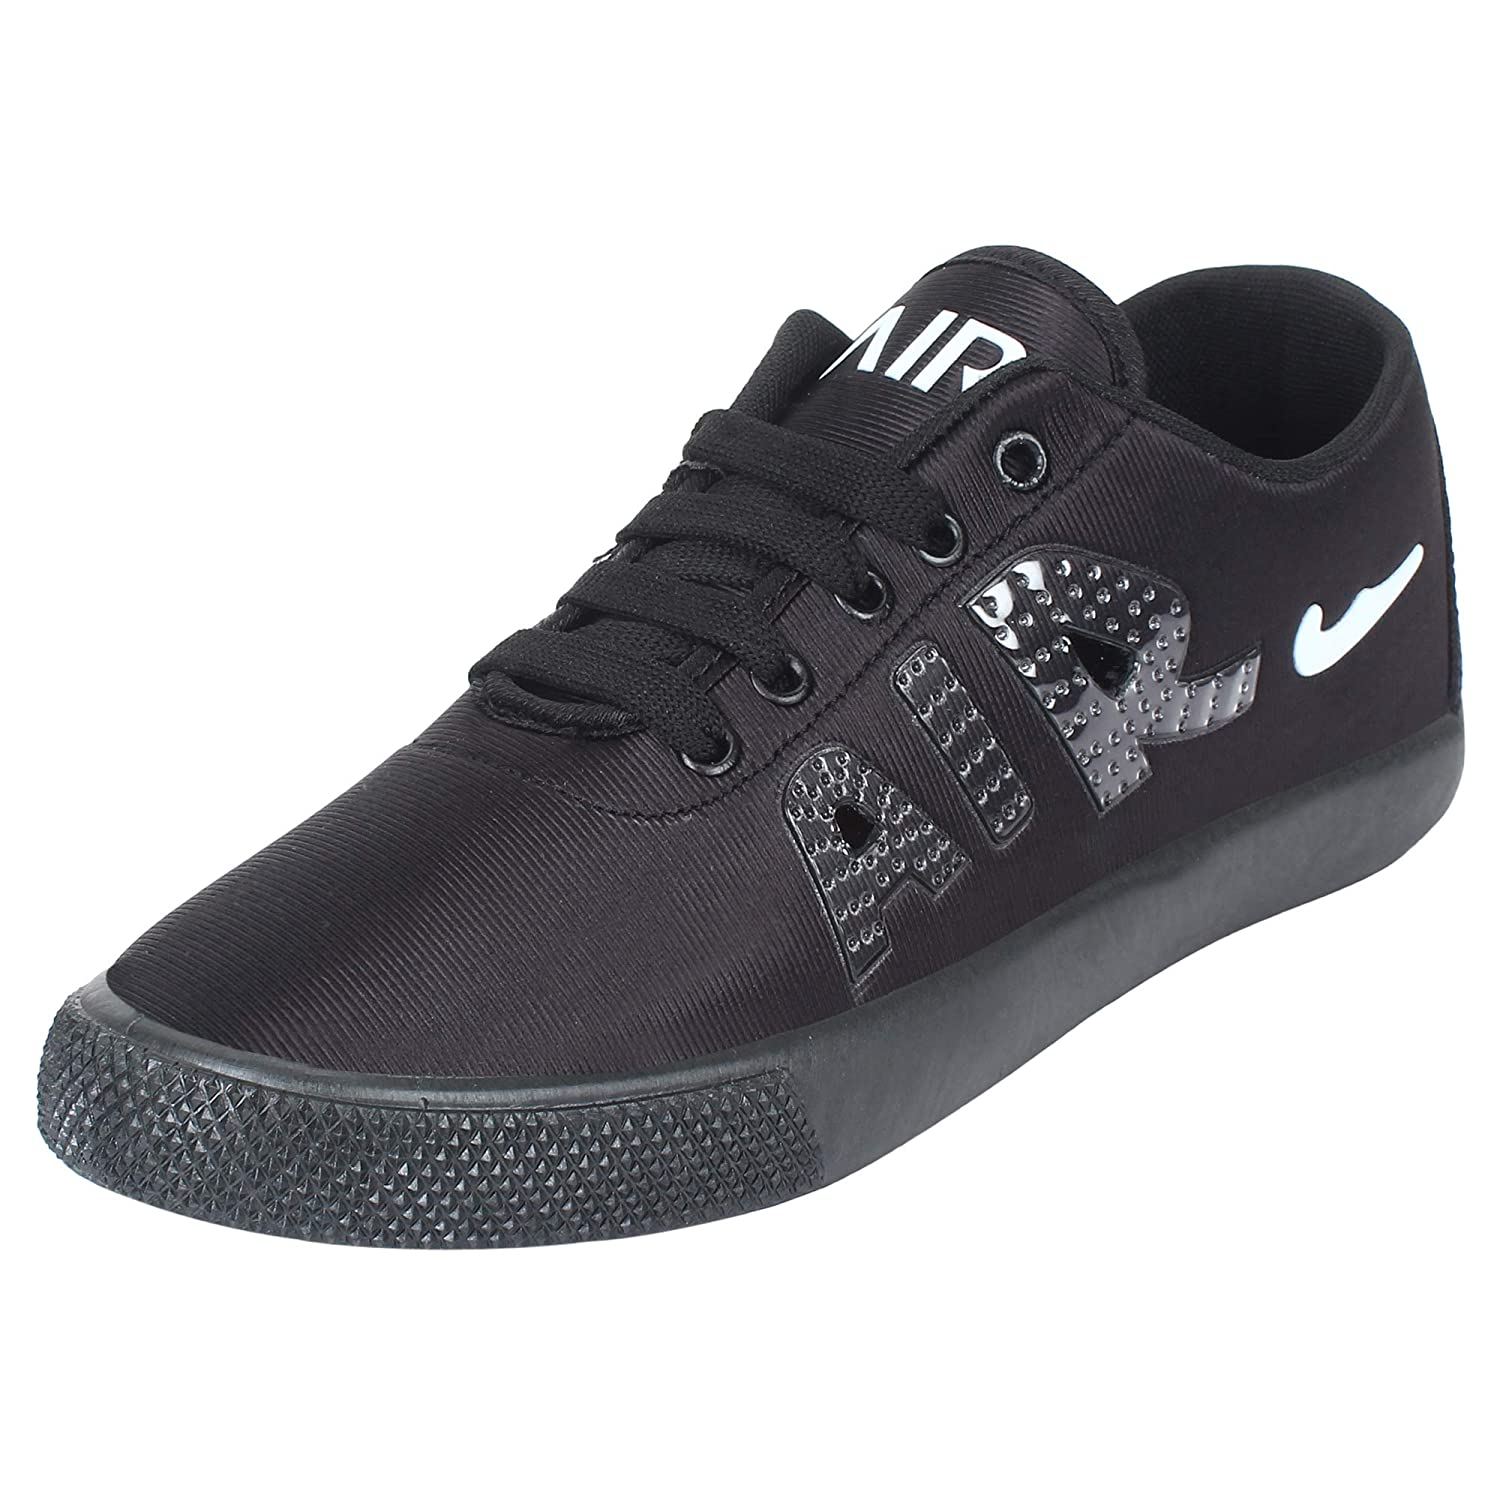 430a250fc Earton Men's Comfortable & Trendy Look Synthetic Grey Sneakers: Buy Online  at Low Prices in India - Amazon.in